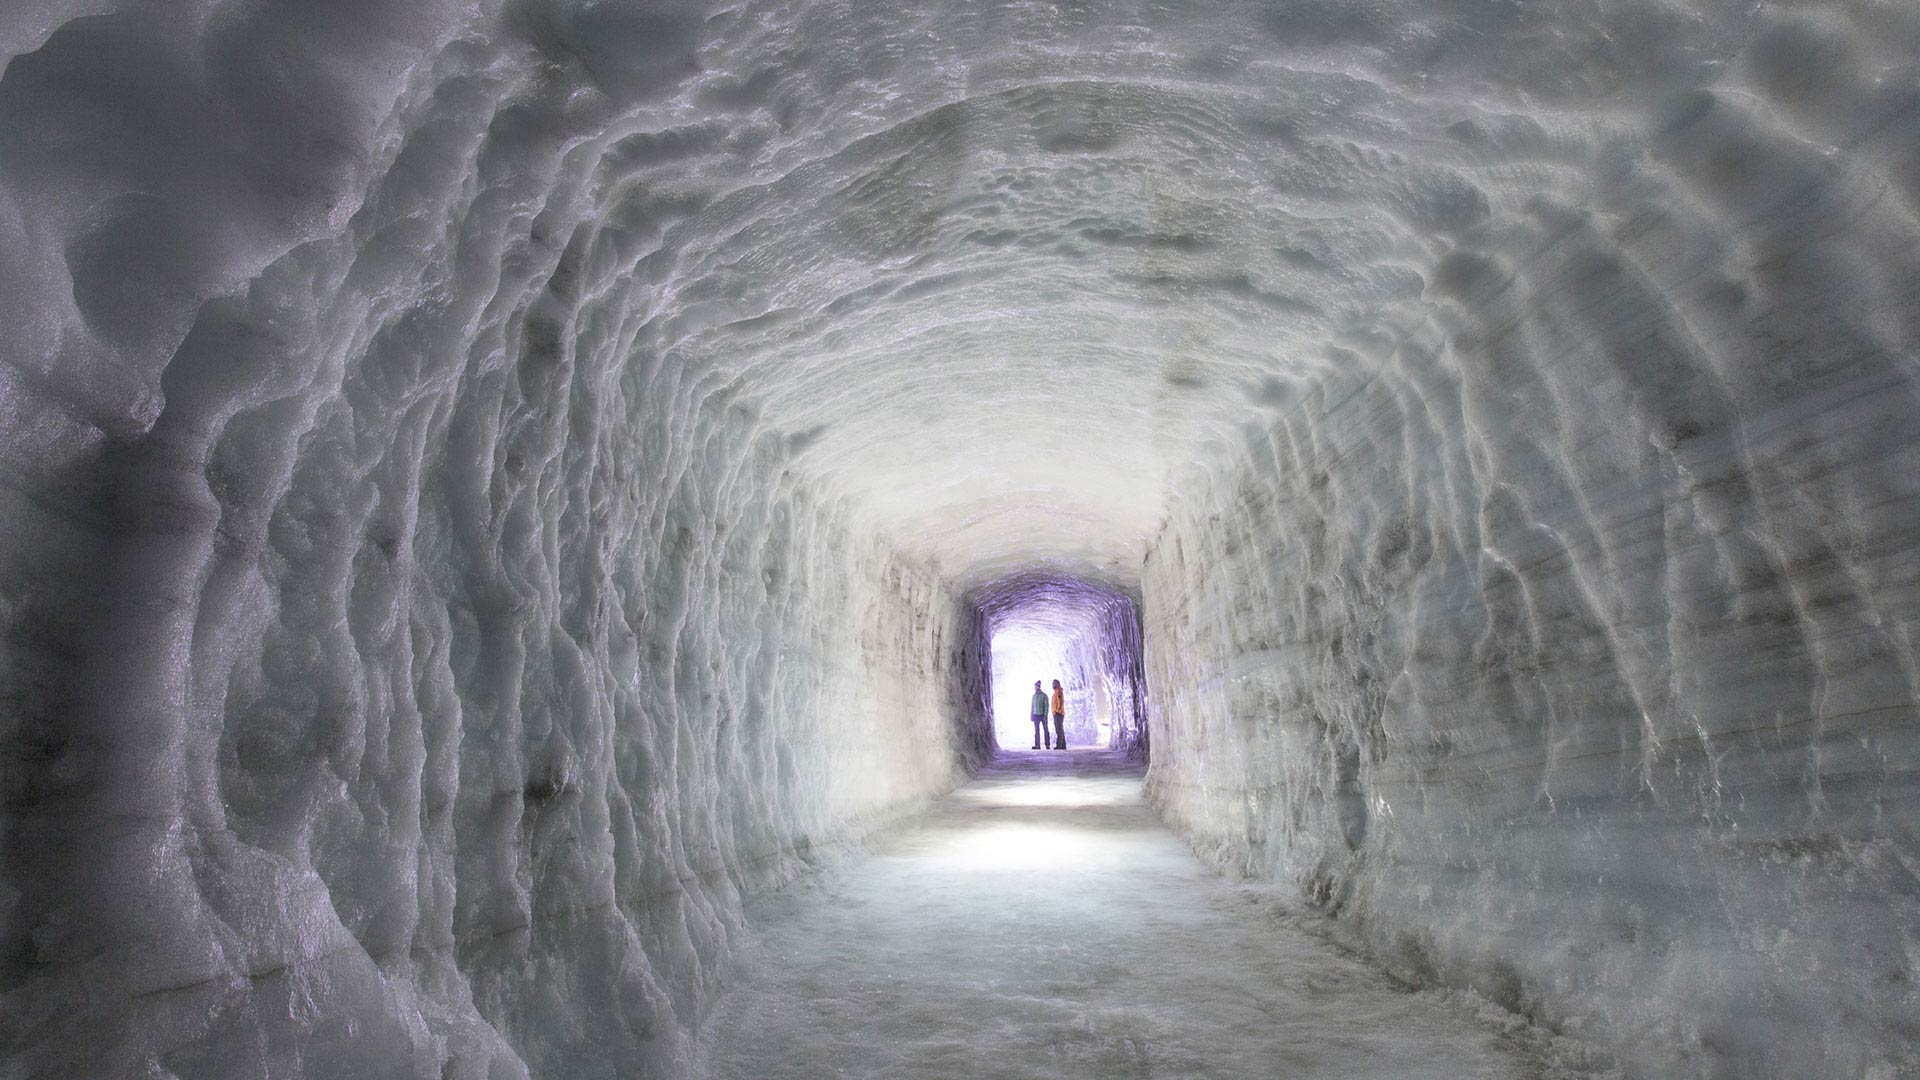 The glacier tunnels